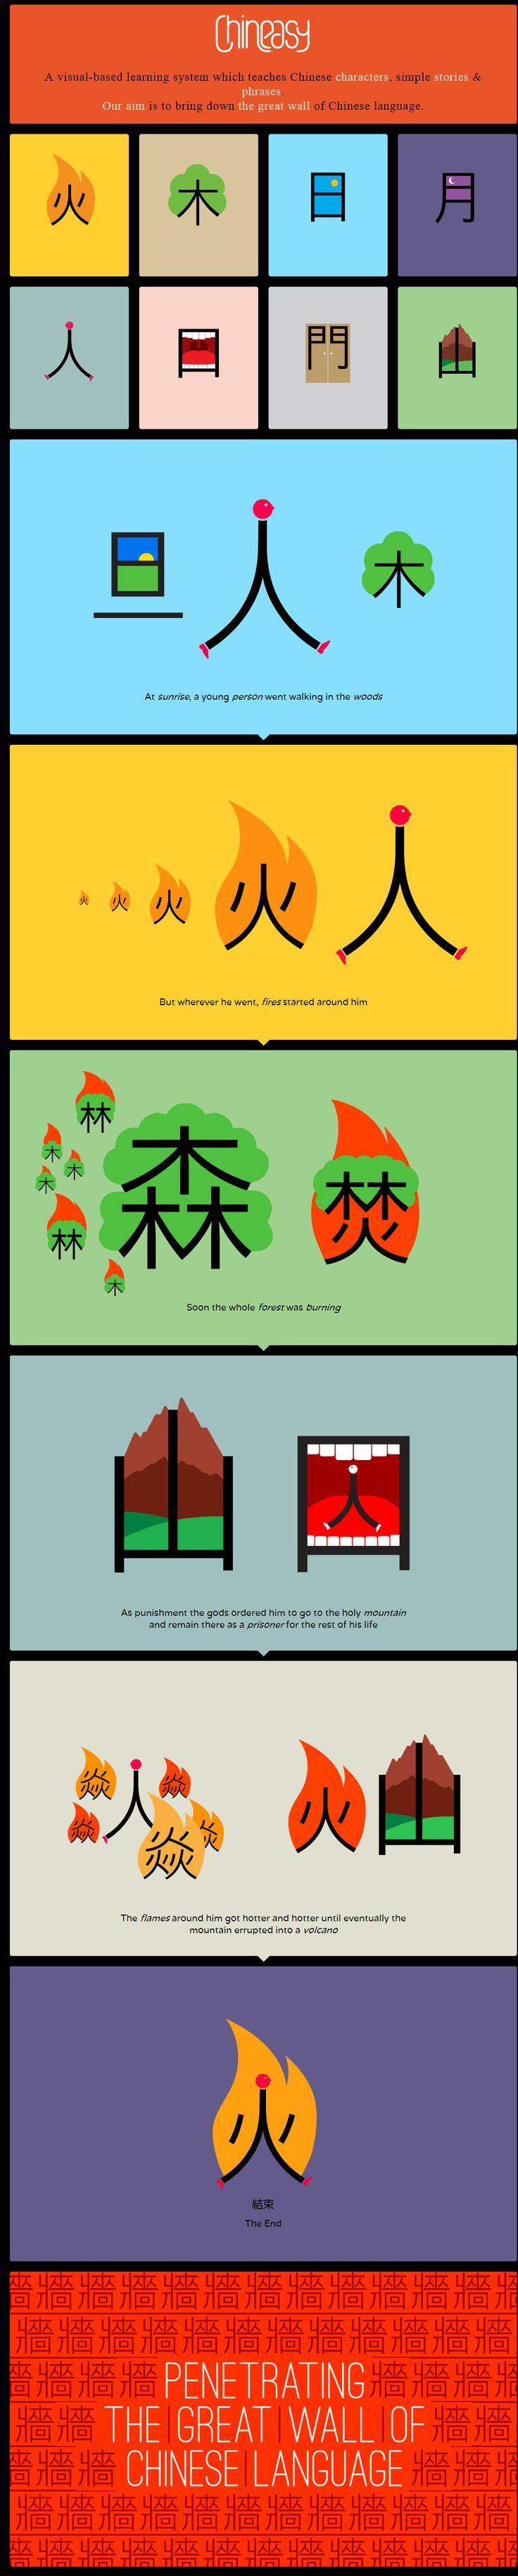 #Infographic #Infografia Chineasy: Visual Guide to learn Chinese,Chineasy: Guia visual para aprender Chino...http://www.chineasy.org/